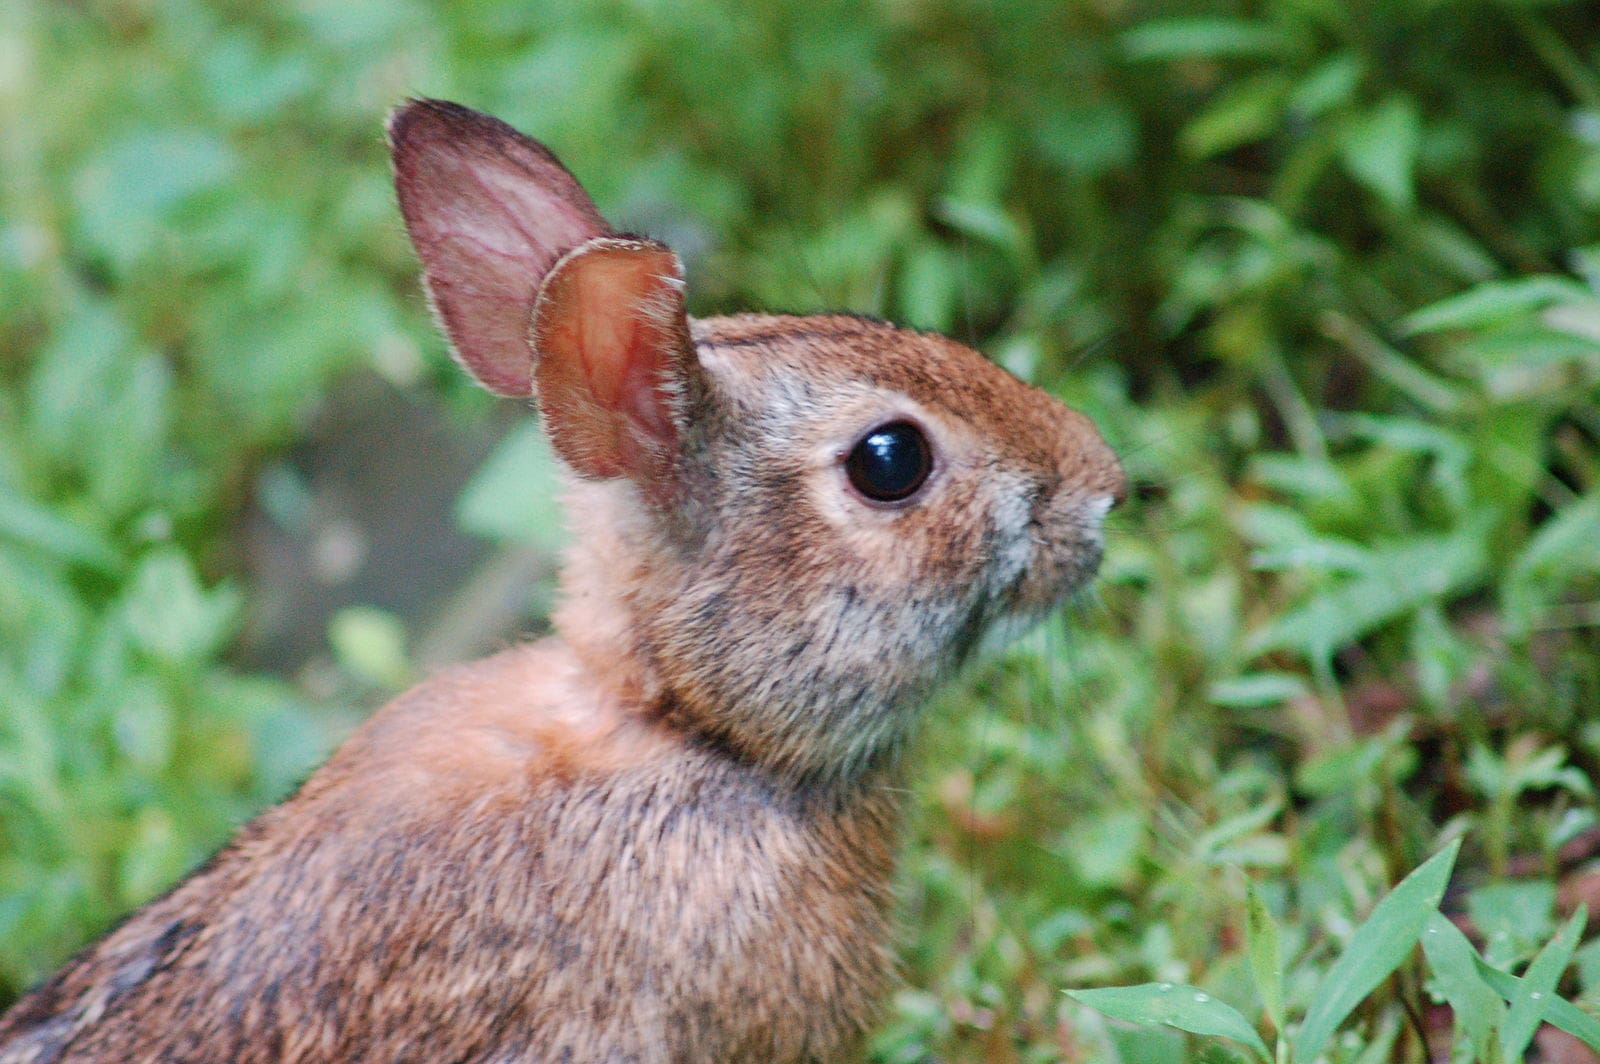 Appalachian Cottontail close up